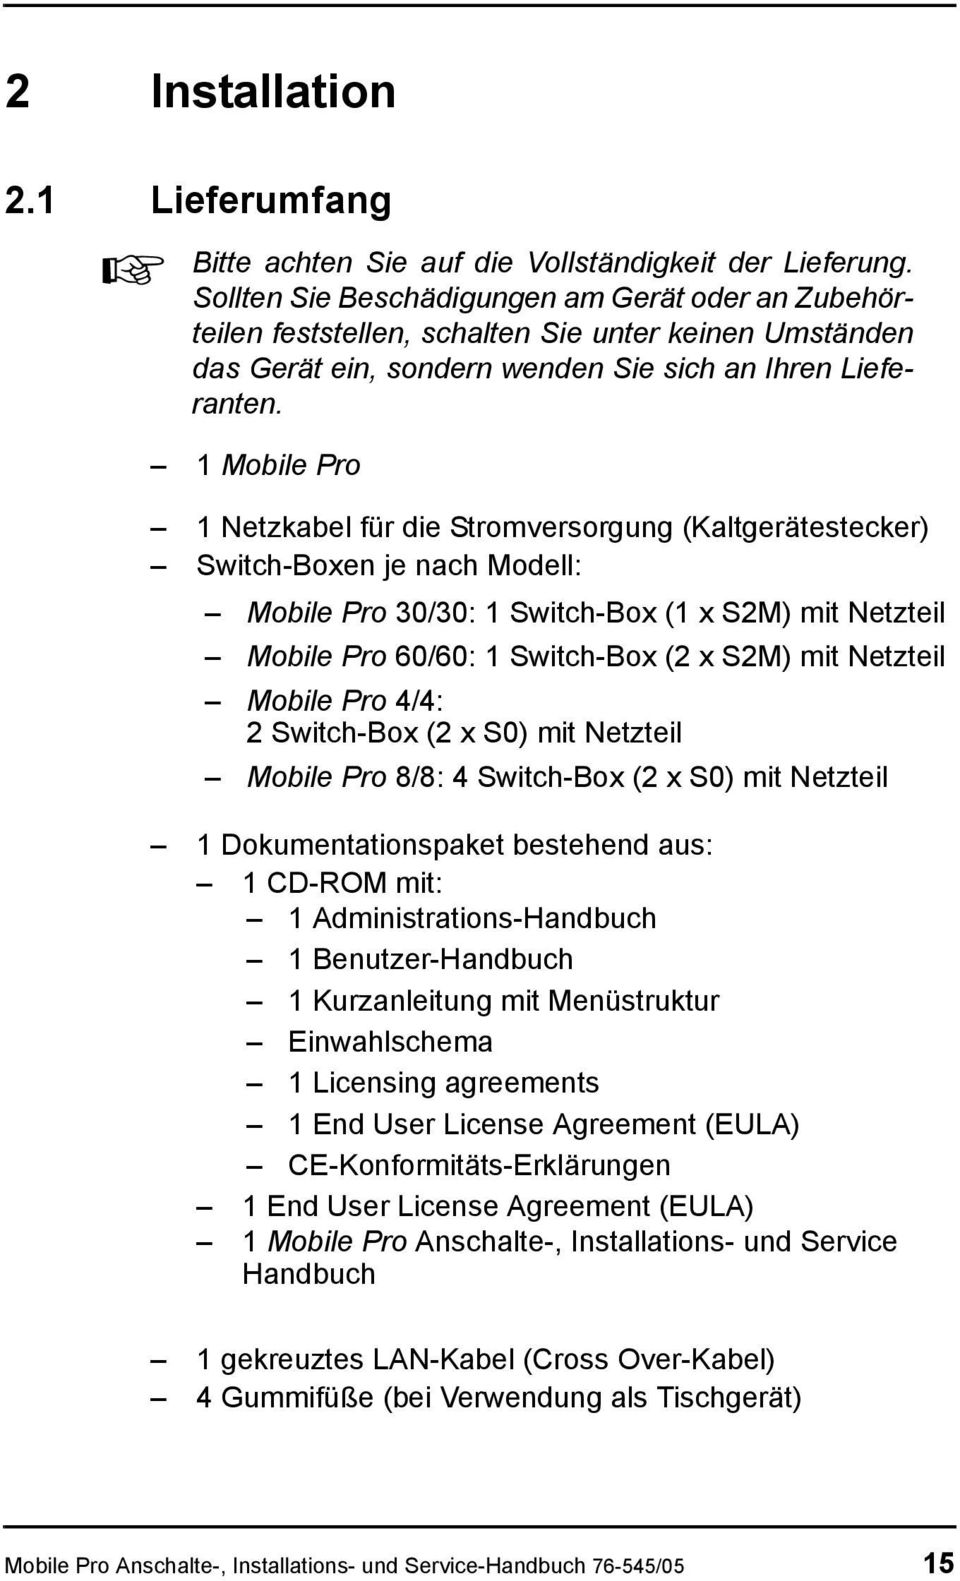 1 Mobile Pro 1 Netzkabel für die Stromversorgung (Kaltgerätestecker) Switch-Boxen je nach Modell: Mobile Pro 30/30: 1 Switch-Box (1 x S2M) mit Netzteil Mobile Pro 60/60: 1 Switch-Box (2 x S2M) mit